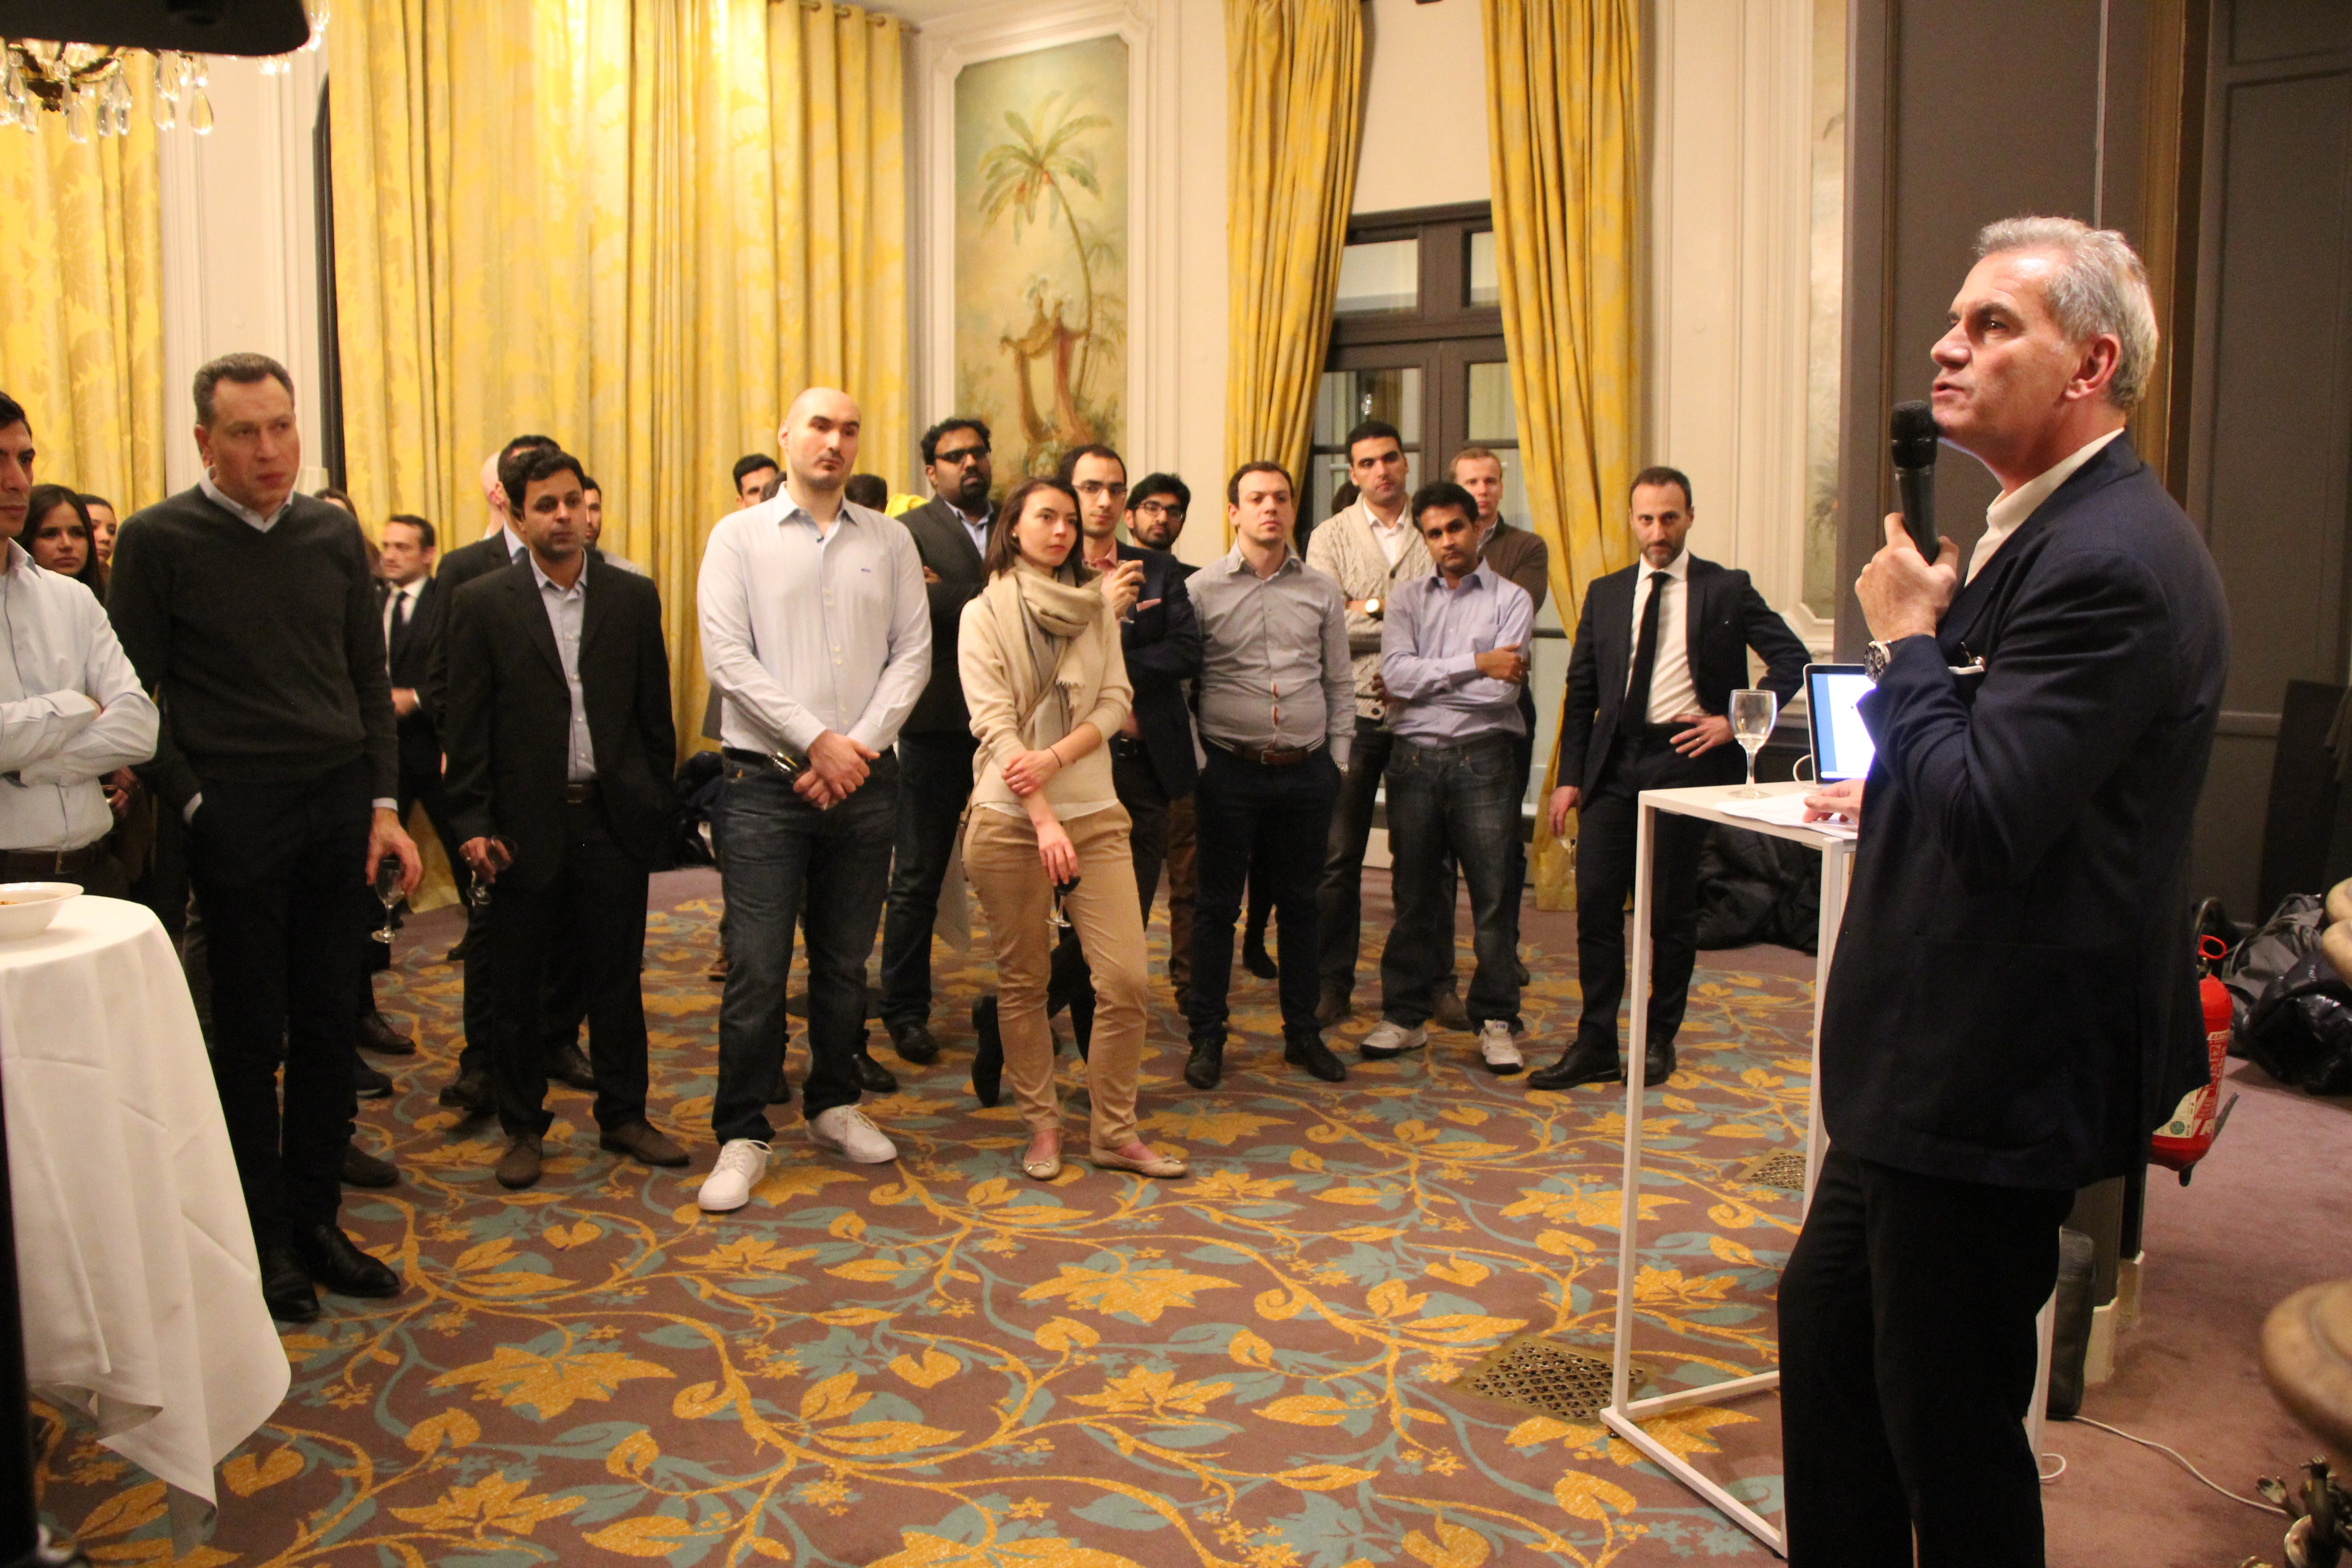 The First Global Afterwork Event - HEC Paris MBA News